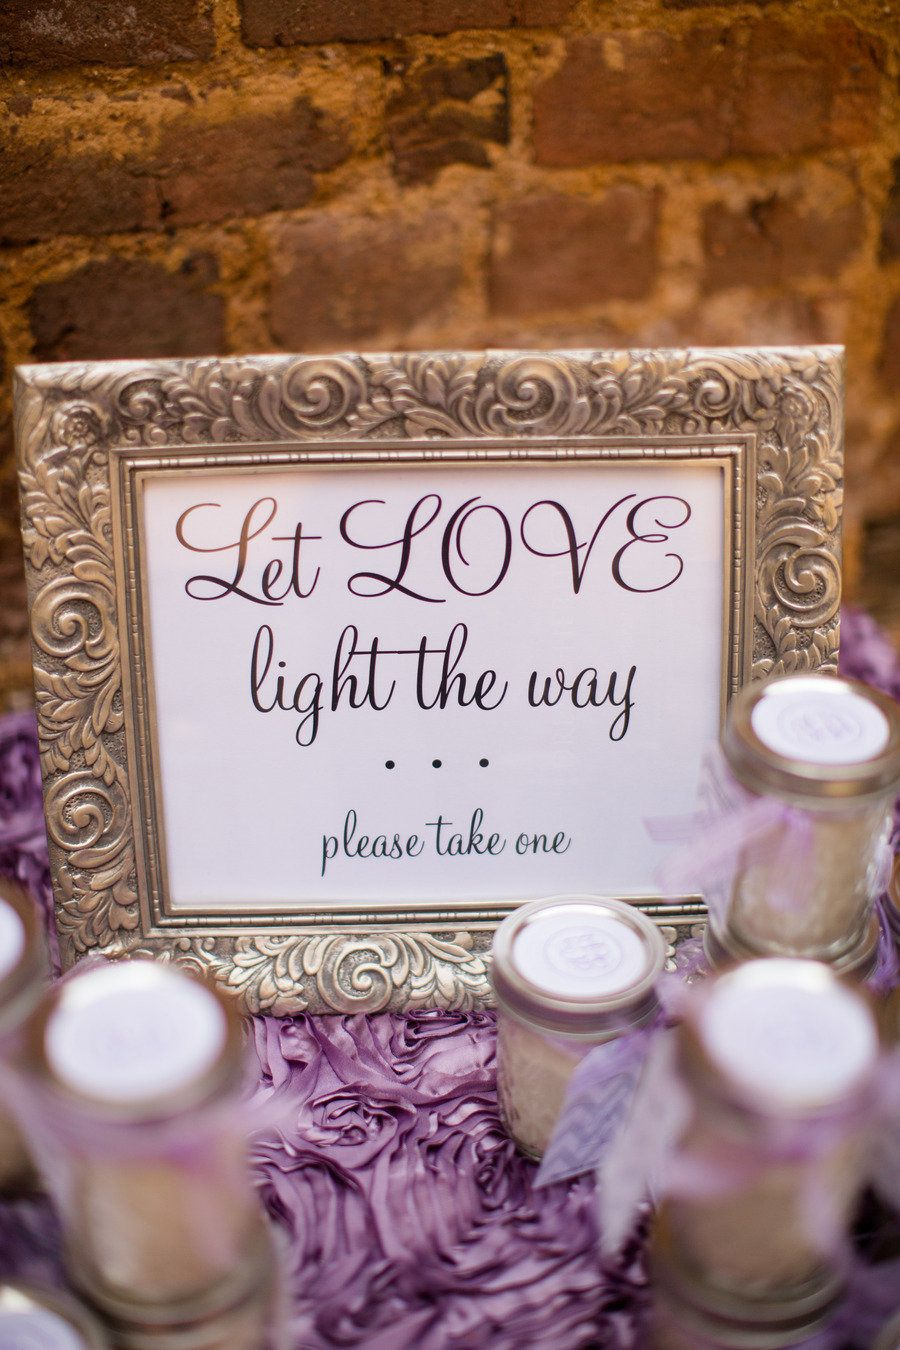 Super Cute Diy Let Love Light The Way Could Be Perfect With Sparklers Or Candles For Th Glow Stick Wedding Wedding Favours Sign Candle Bridal Shower Favors